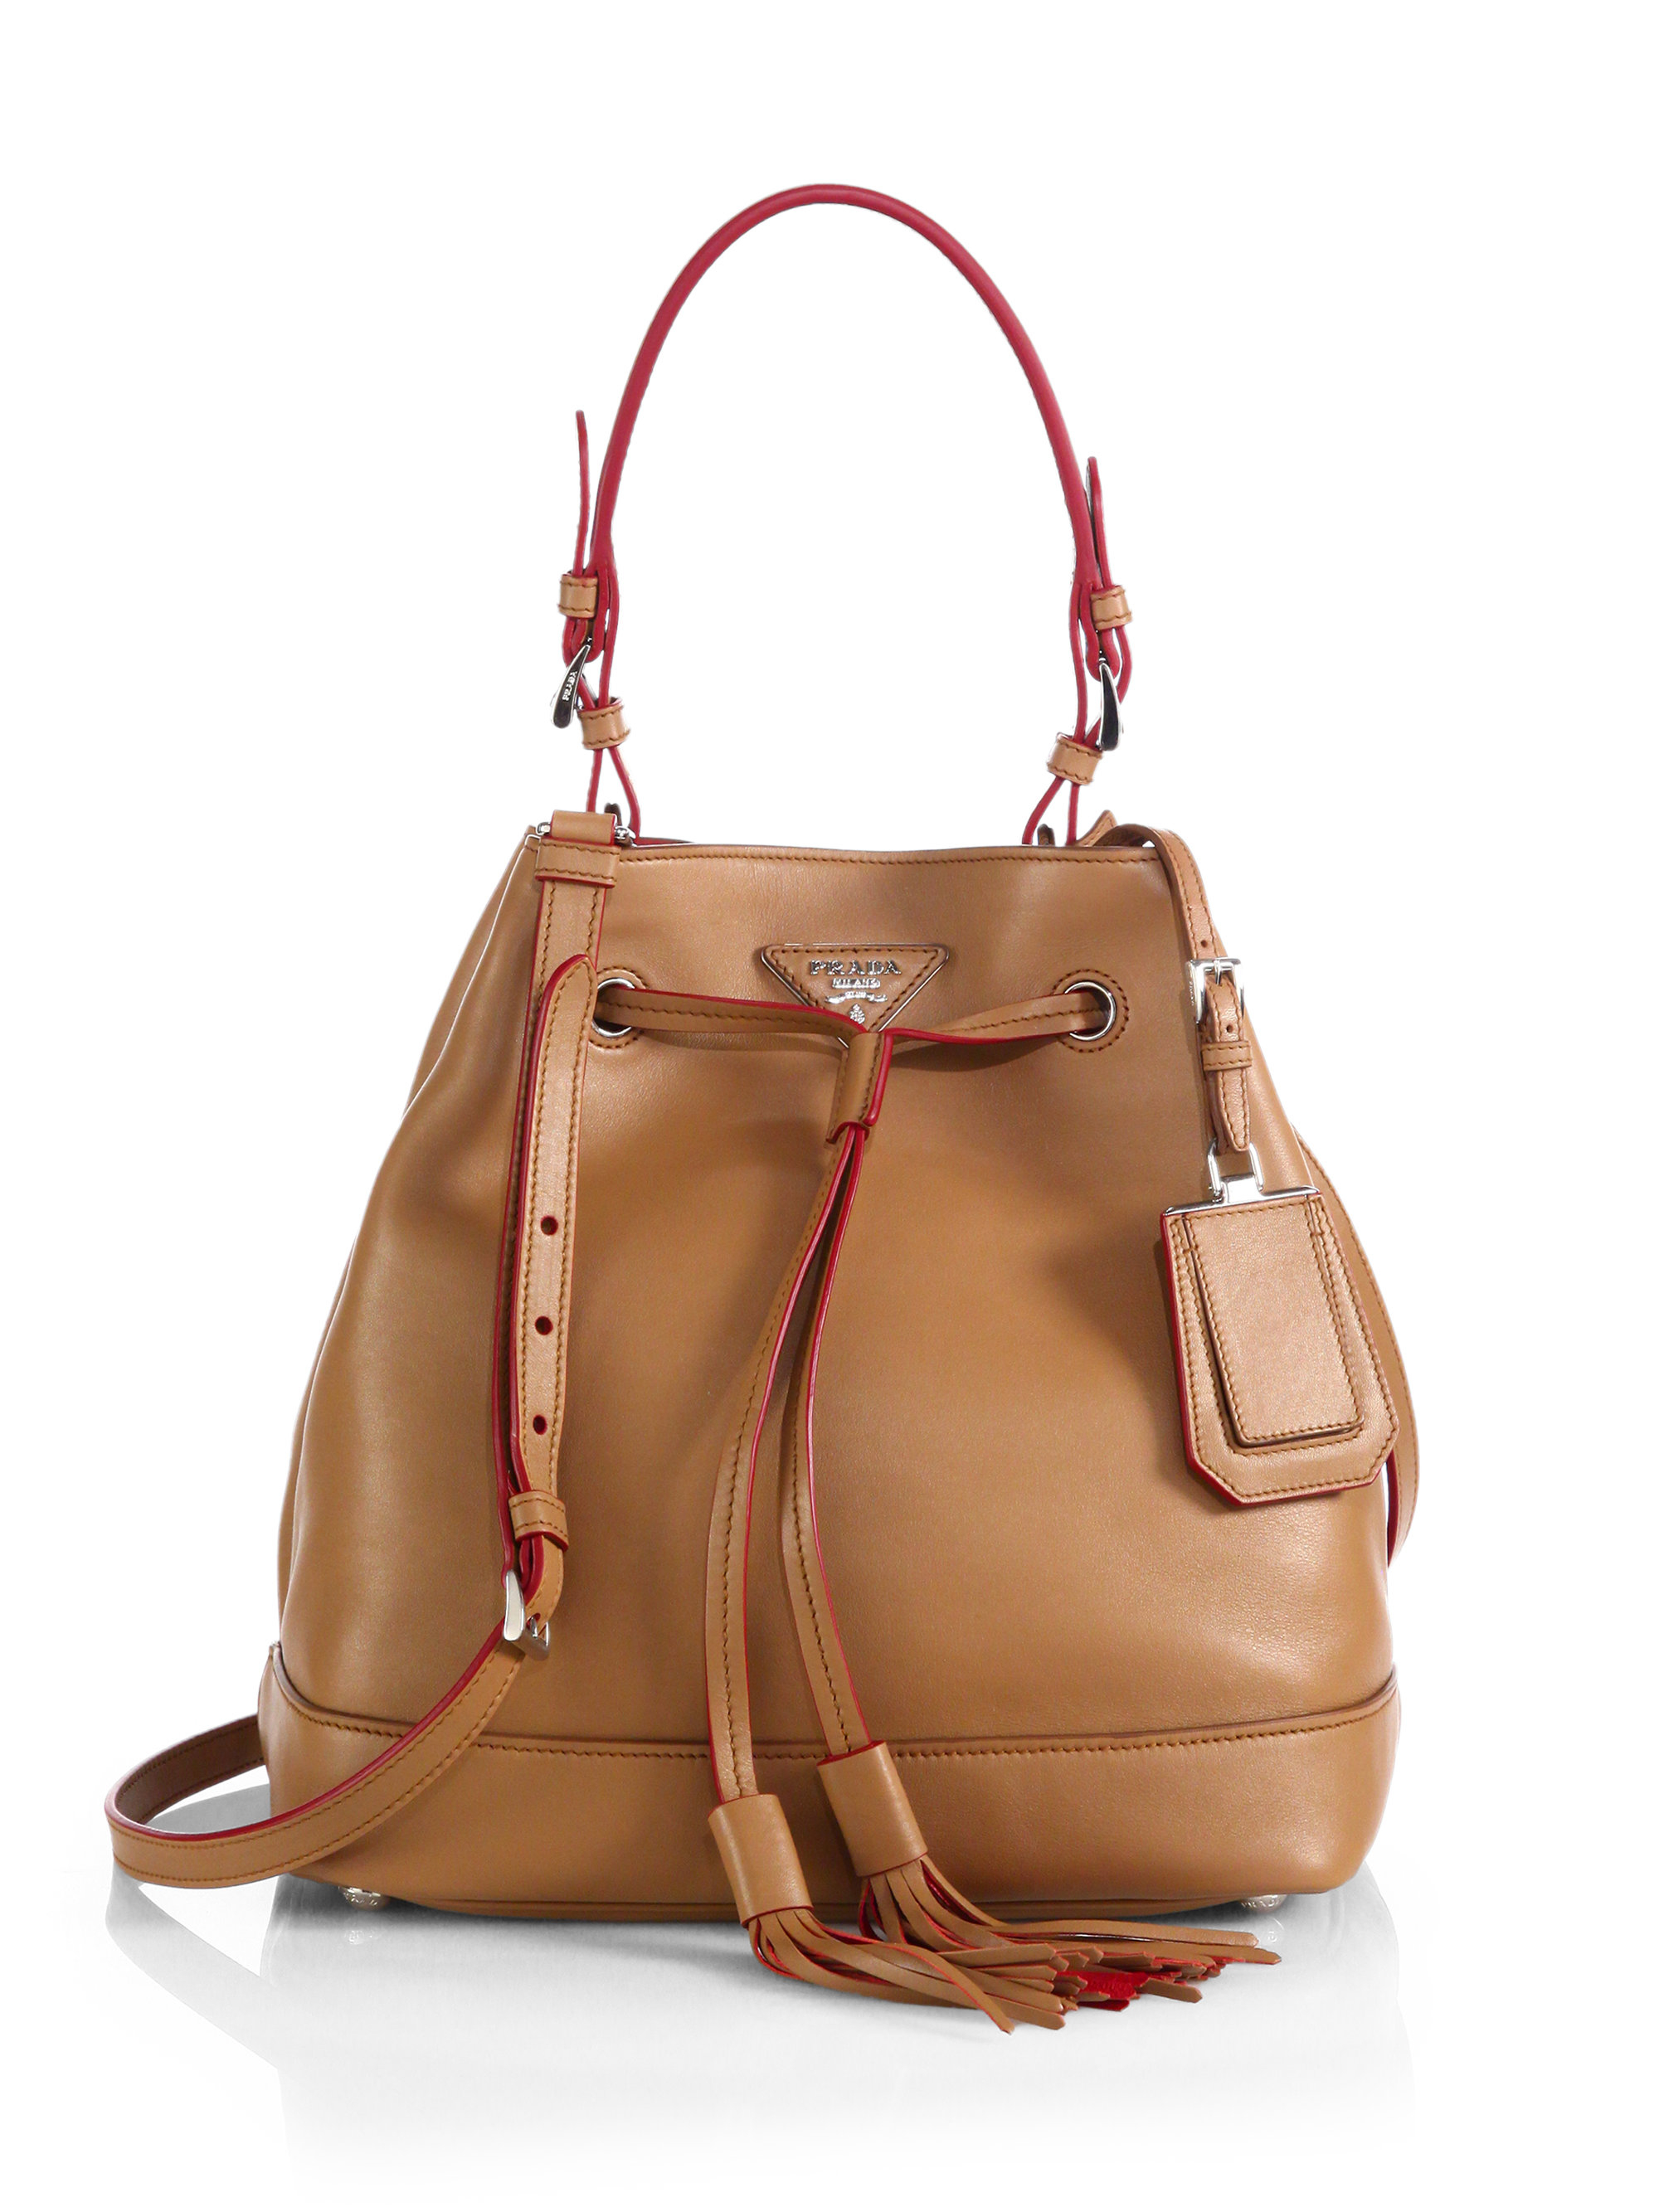 This seasonless bucket bag carries posh style in Italian leather or suede. Generous pockets, front and back, ensure essentials are always close at hand. Open top with post-and-hole closure. Slit pockets front and back; magnetic closure. Interior pocket. Adjustable cross-body strap. Leather or suede; unlined.